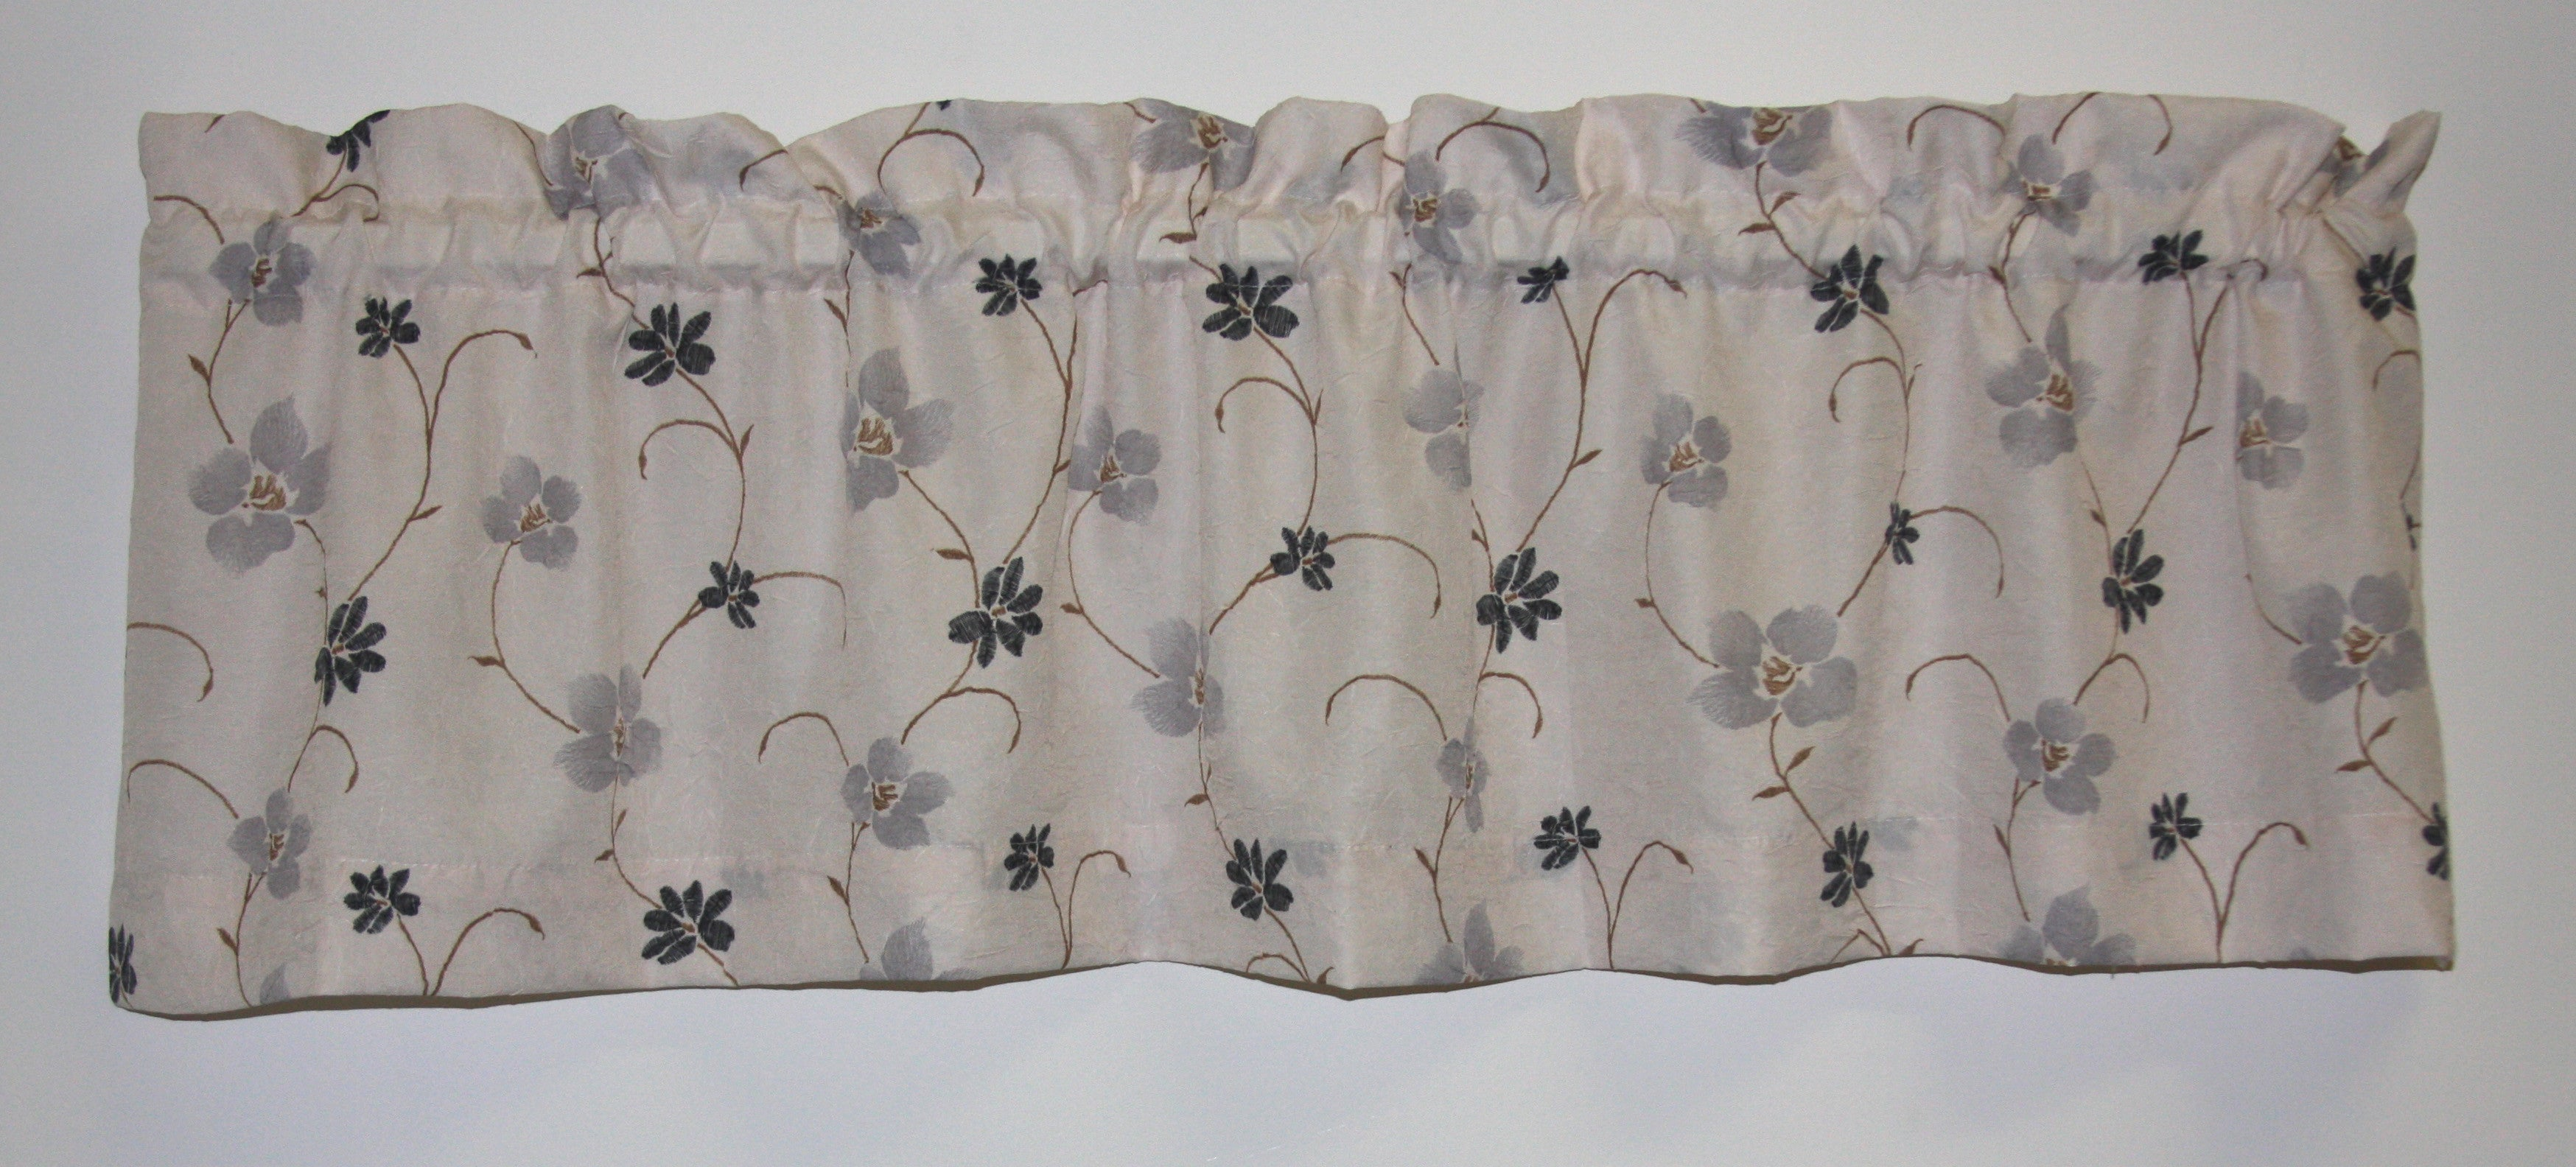 click tailored treament bristol plaid valance p tier pair window to expand